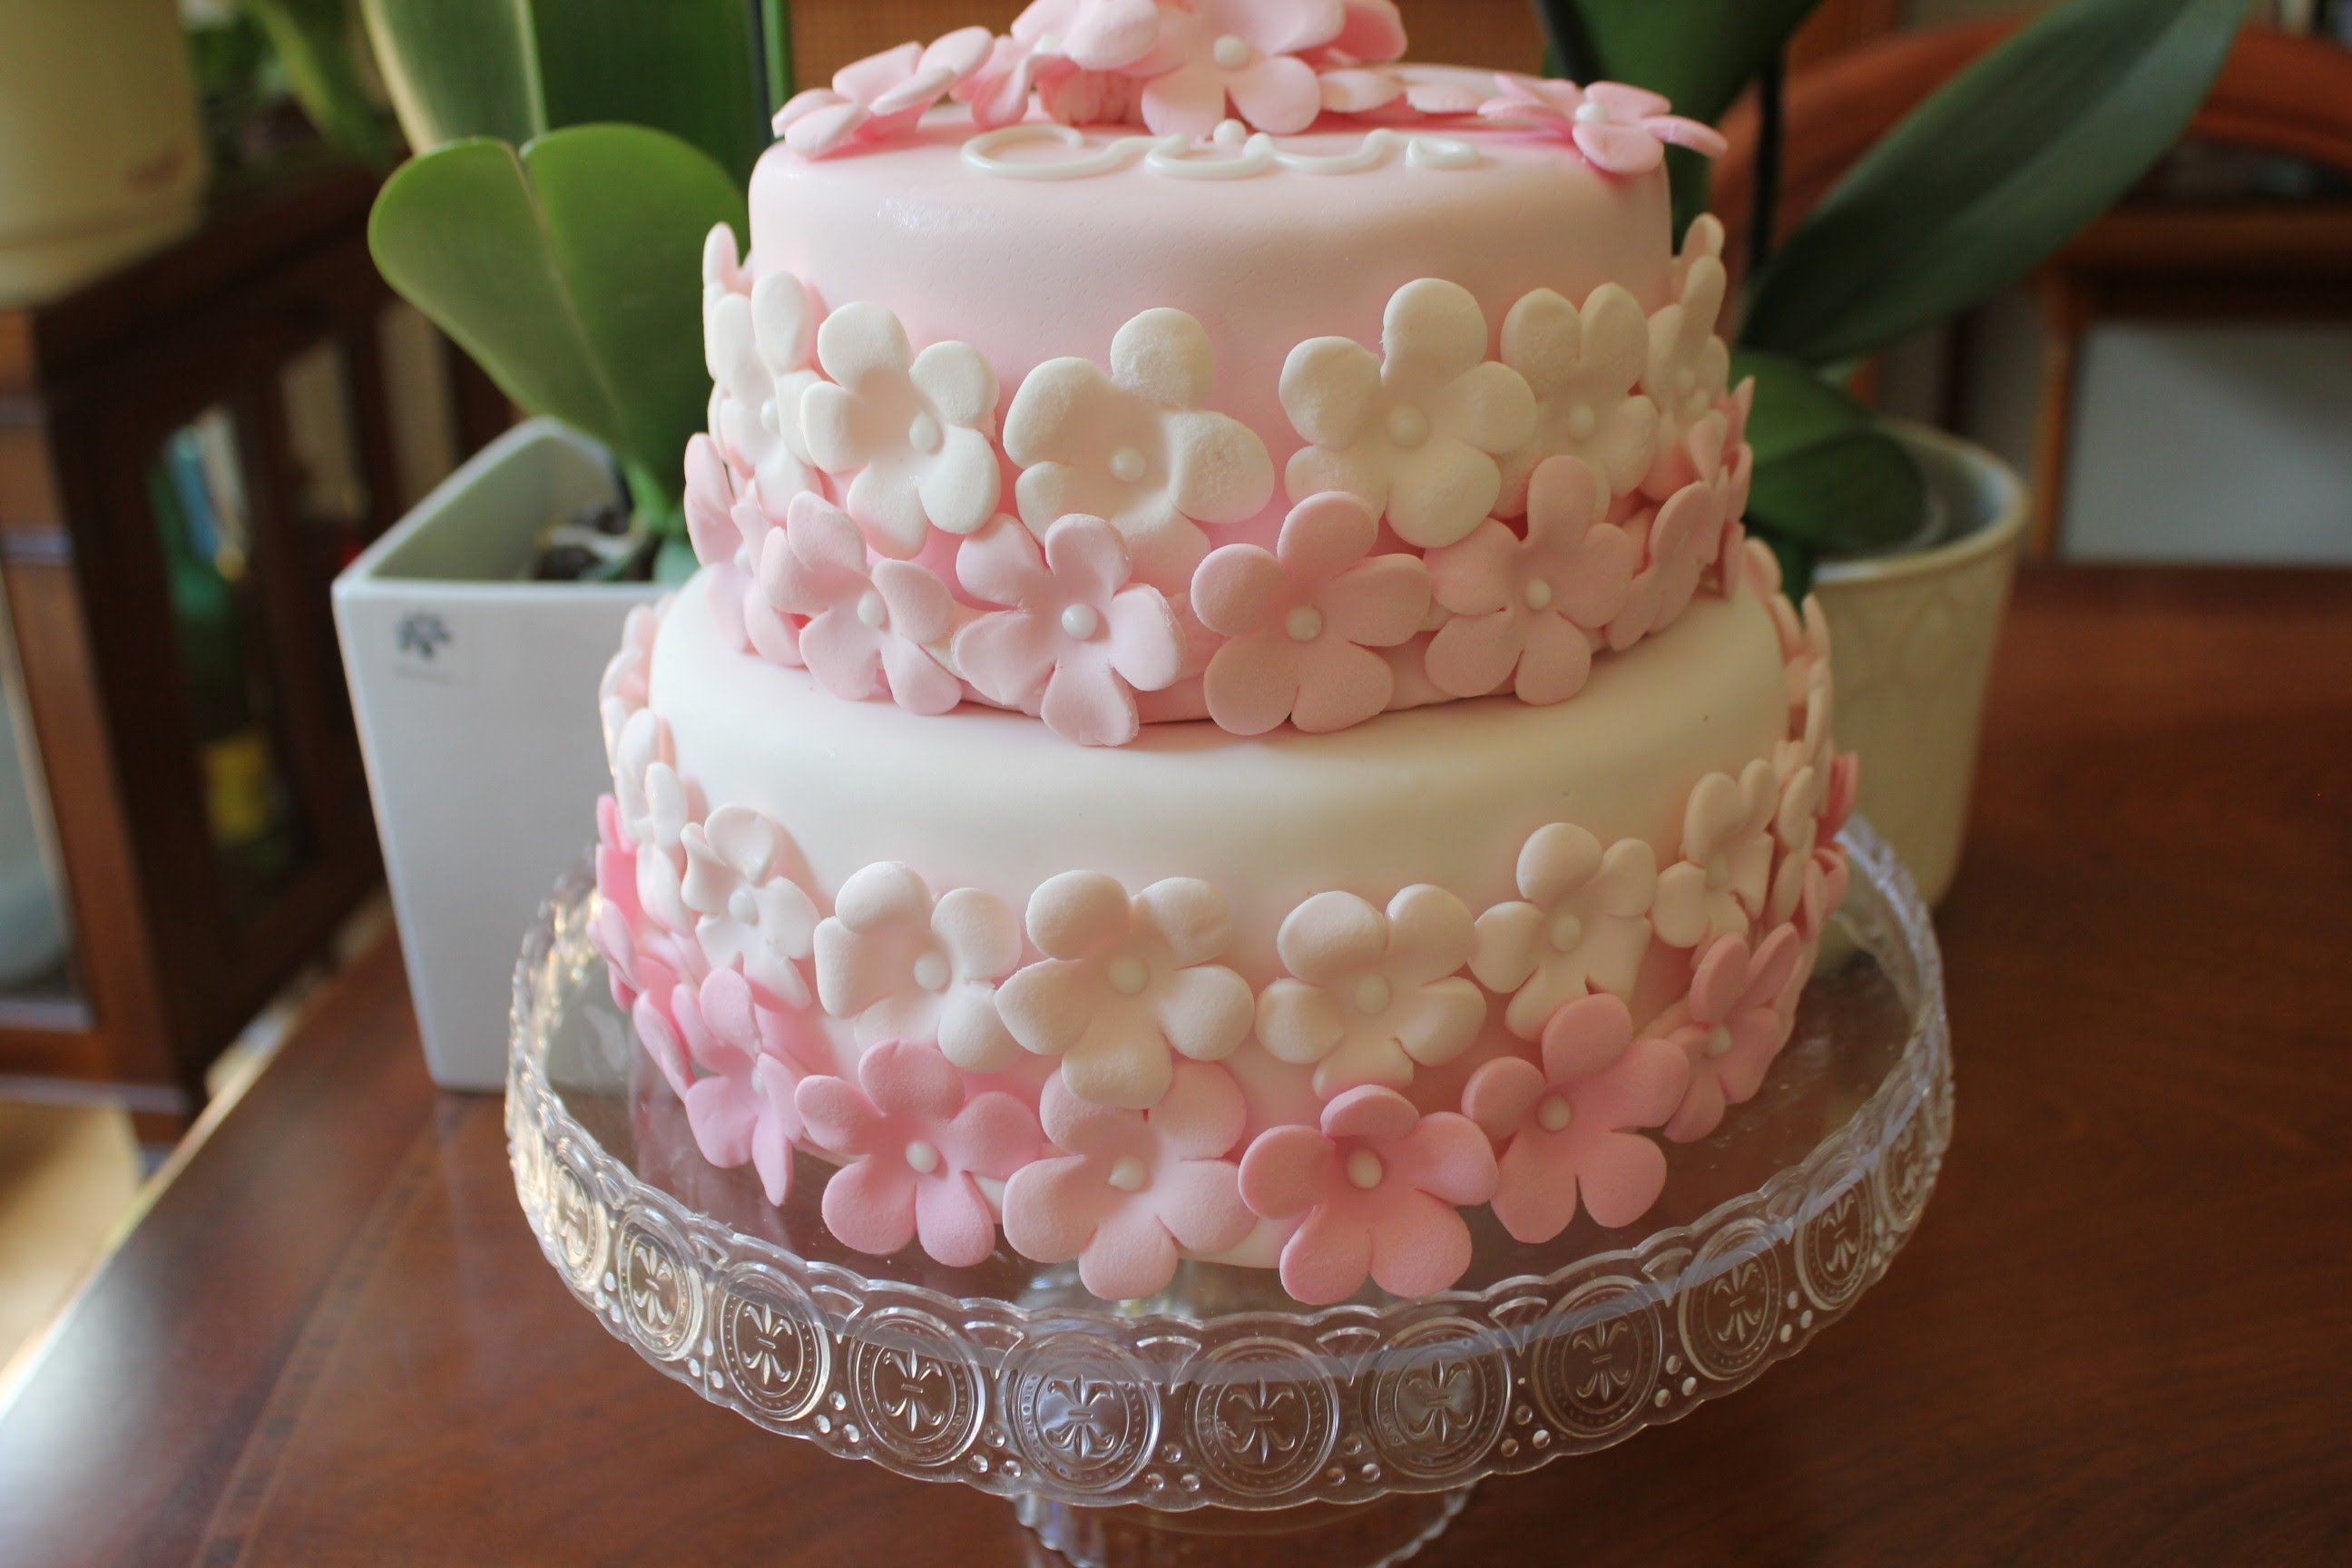 In this video we make an easy fondant cake. We use a lot of flowers in different pink colors. The cake is easy and beauty. Follow us in Facebook: http://www....